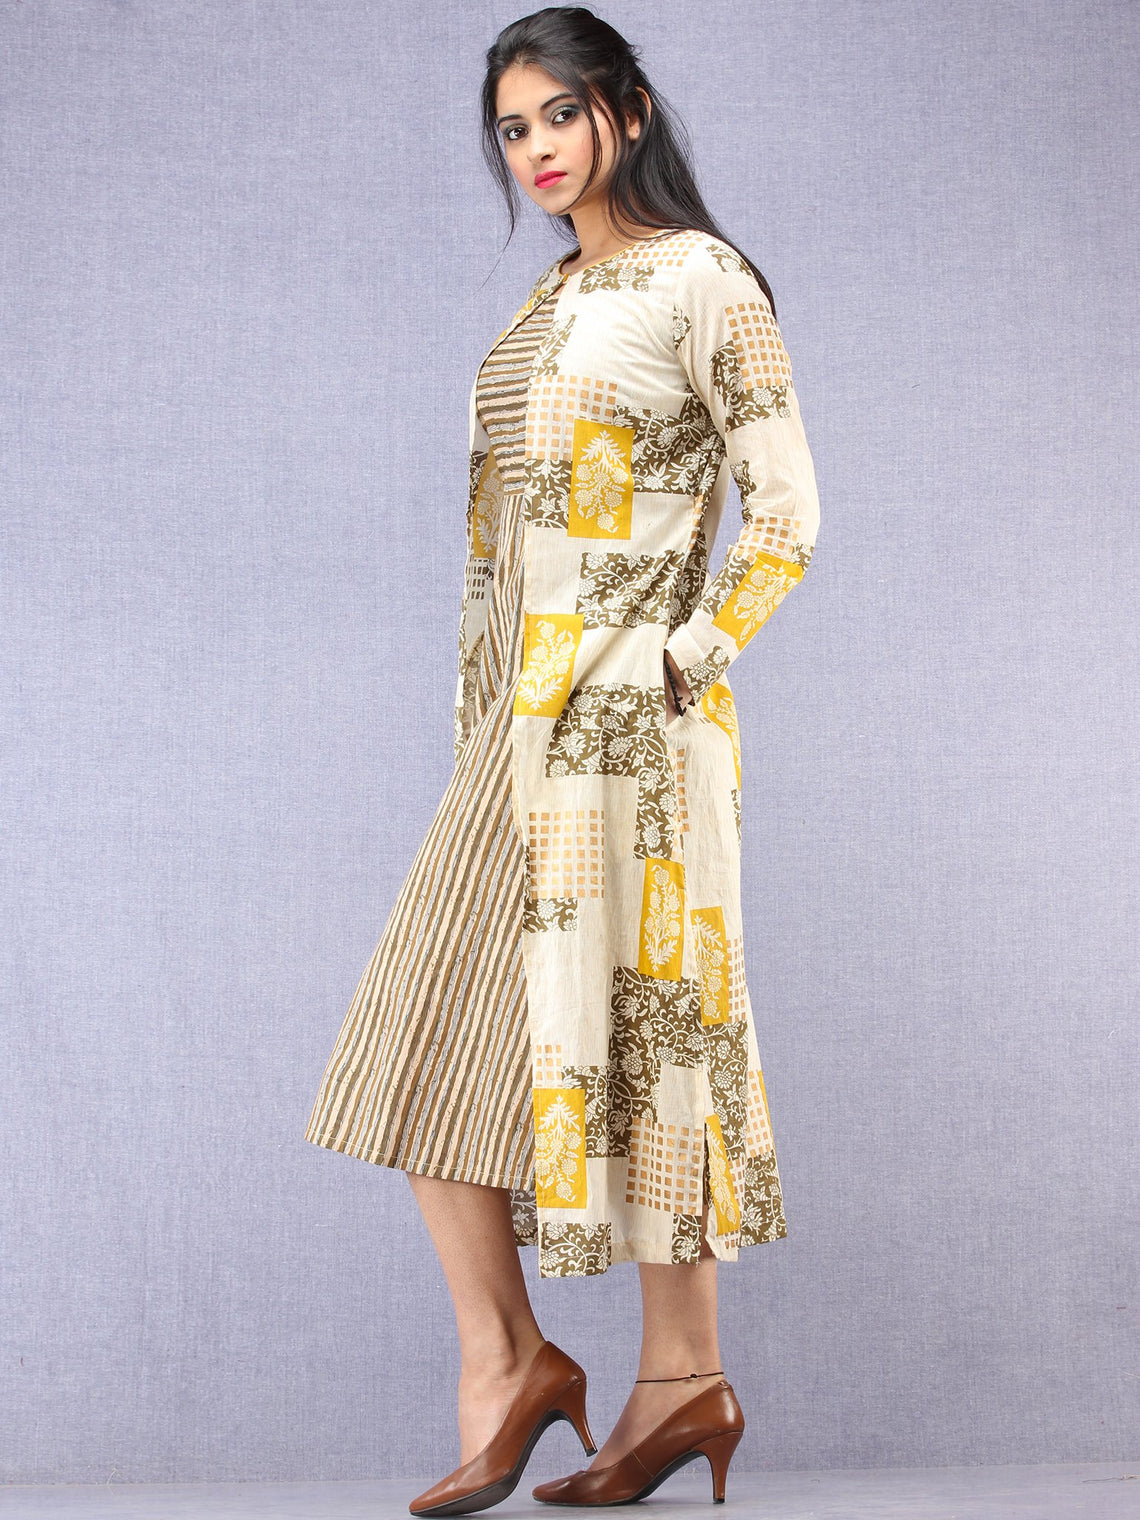 Nazan - Block Printed Cotton Middi Dress With Tunic & Cape - D393F2015